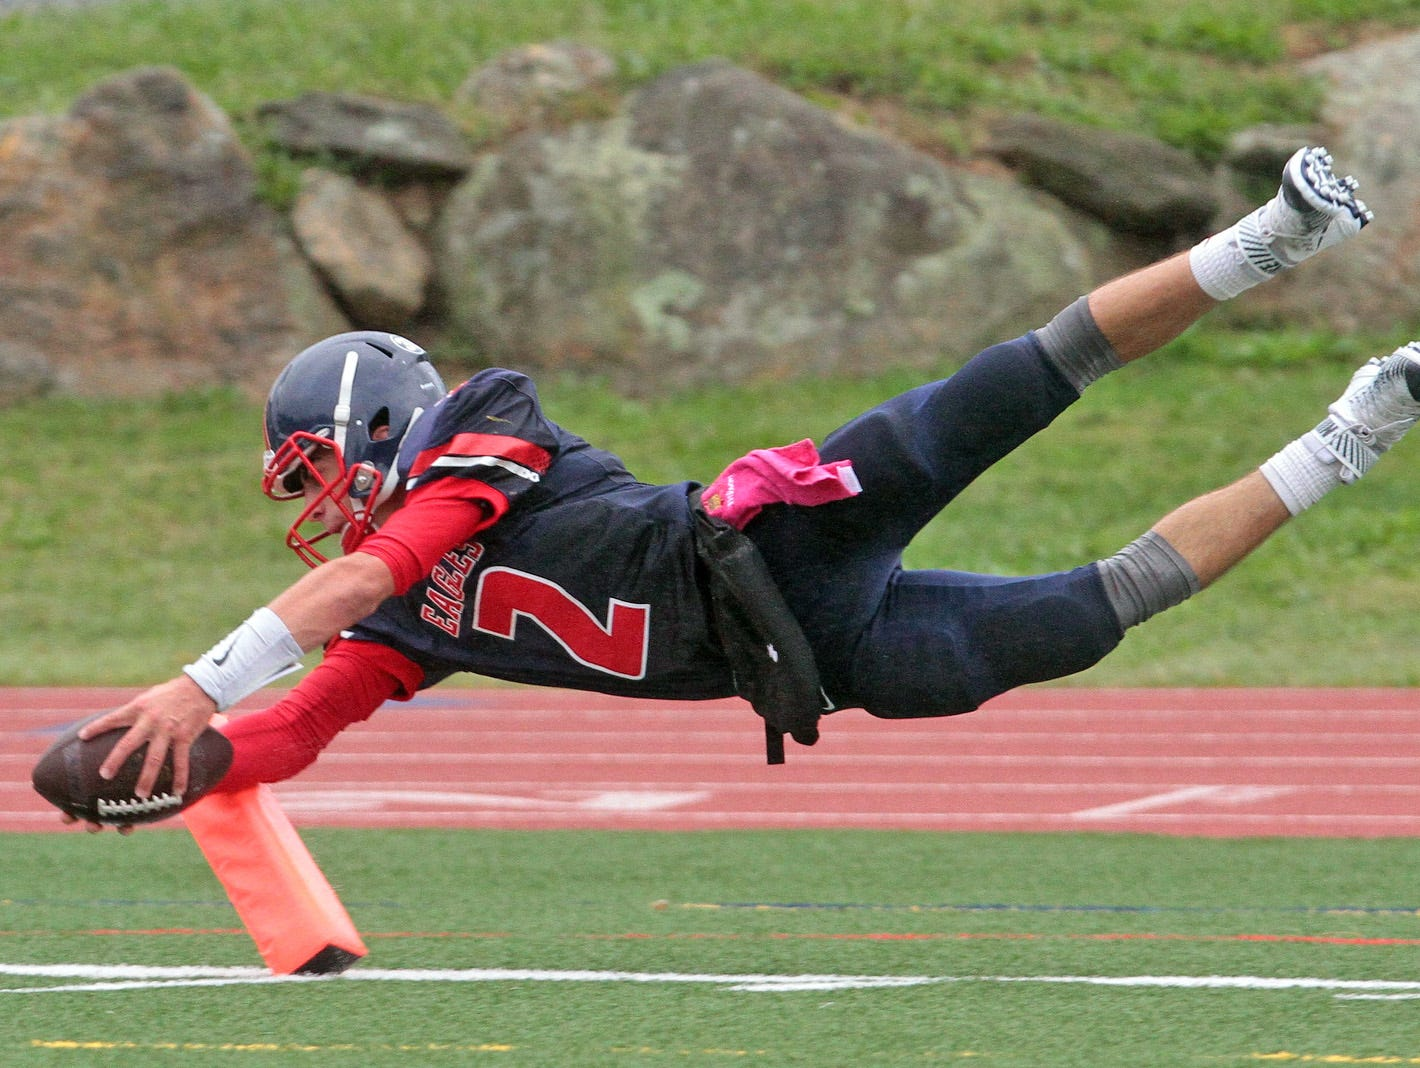 Eastchester quarterback John Arcidiacono capped a 67-yard touchdown run with a dive into the end zone during a varsity football game against Pearl River at Eastchester High School Oct. 3, 2015. Eastchester cruised to a 31-7 victory over Pearl River.